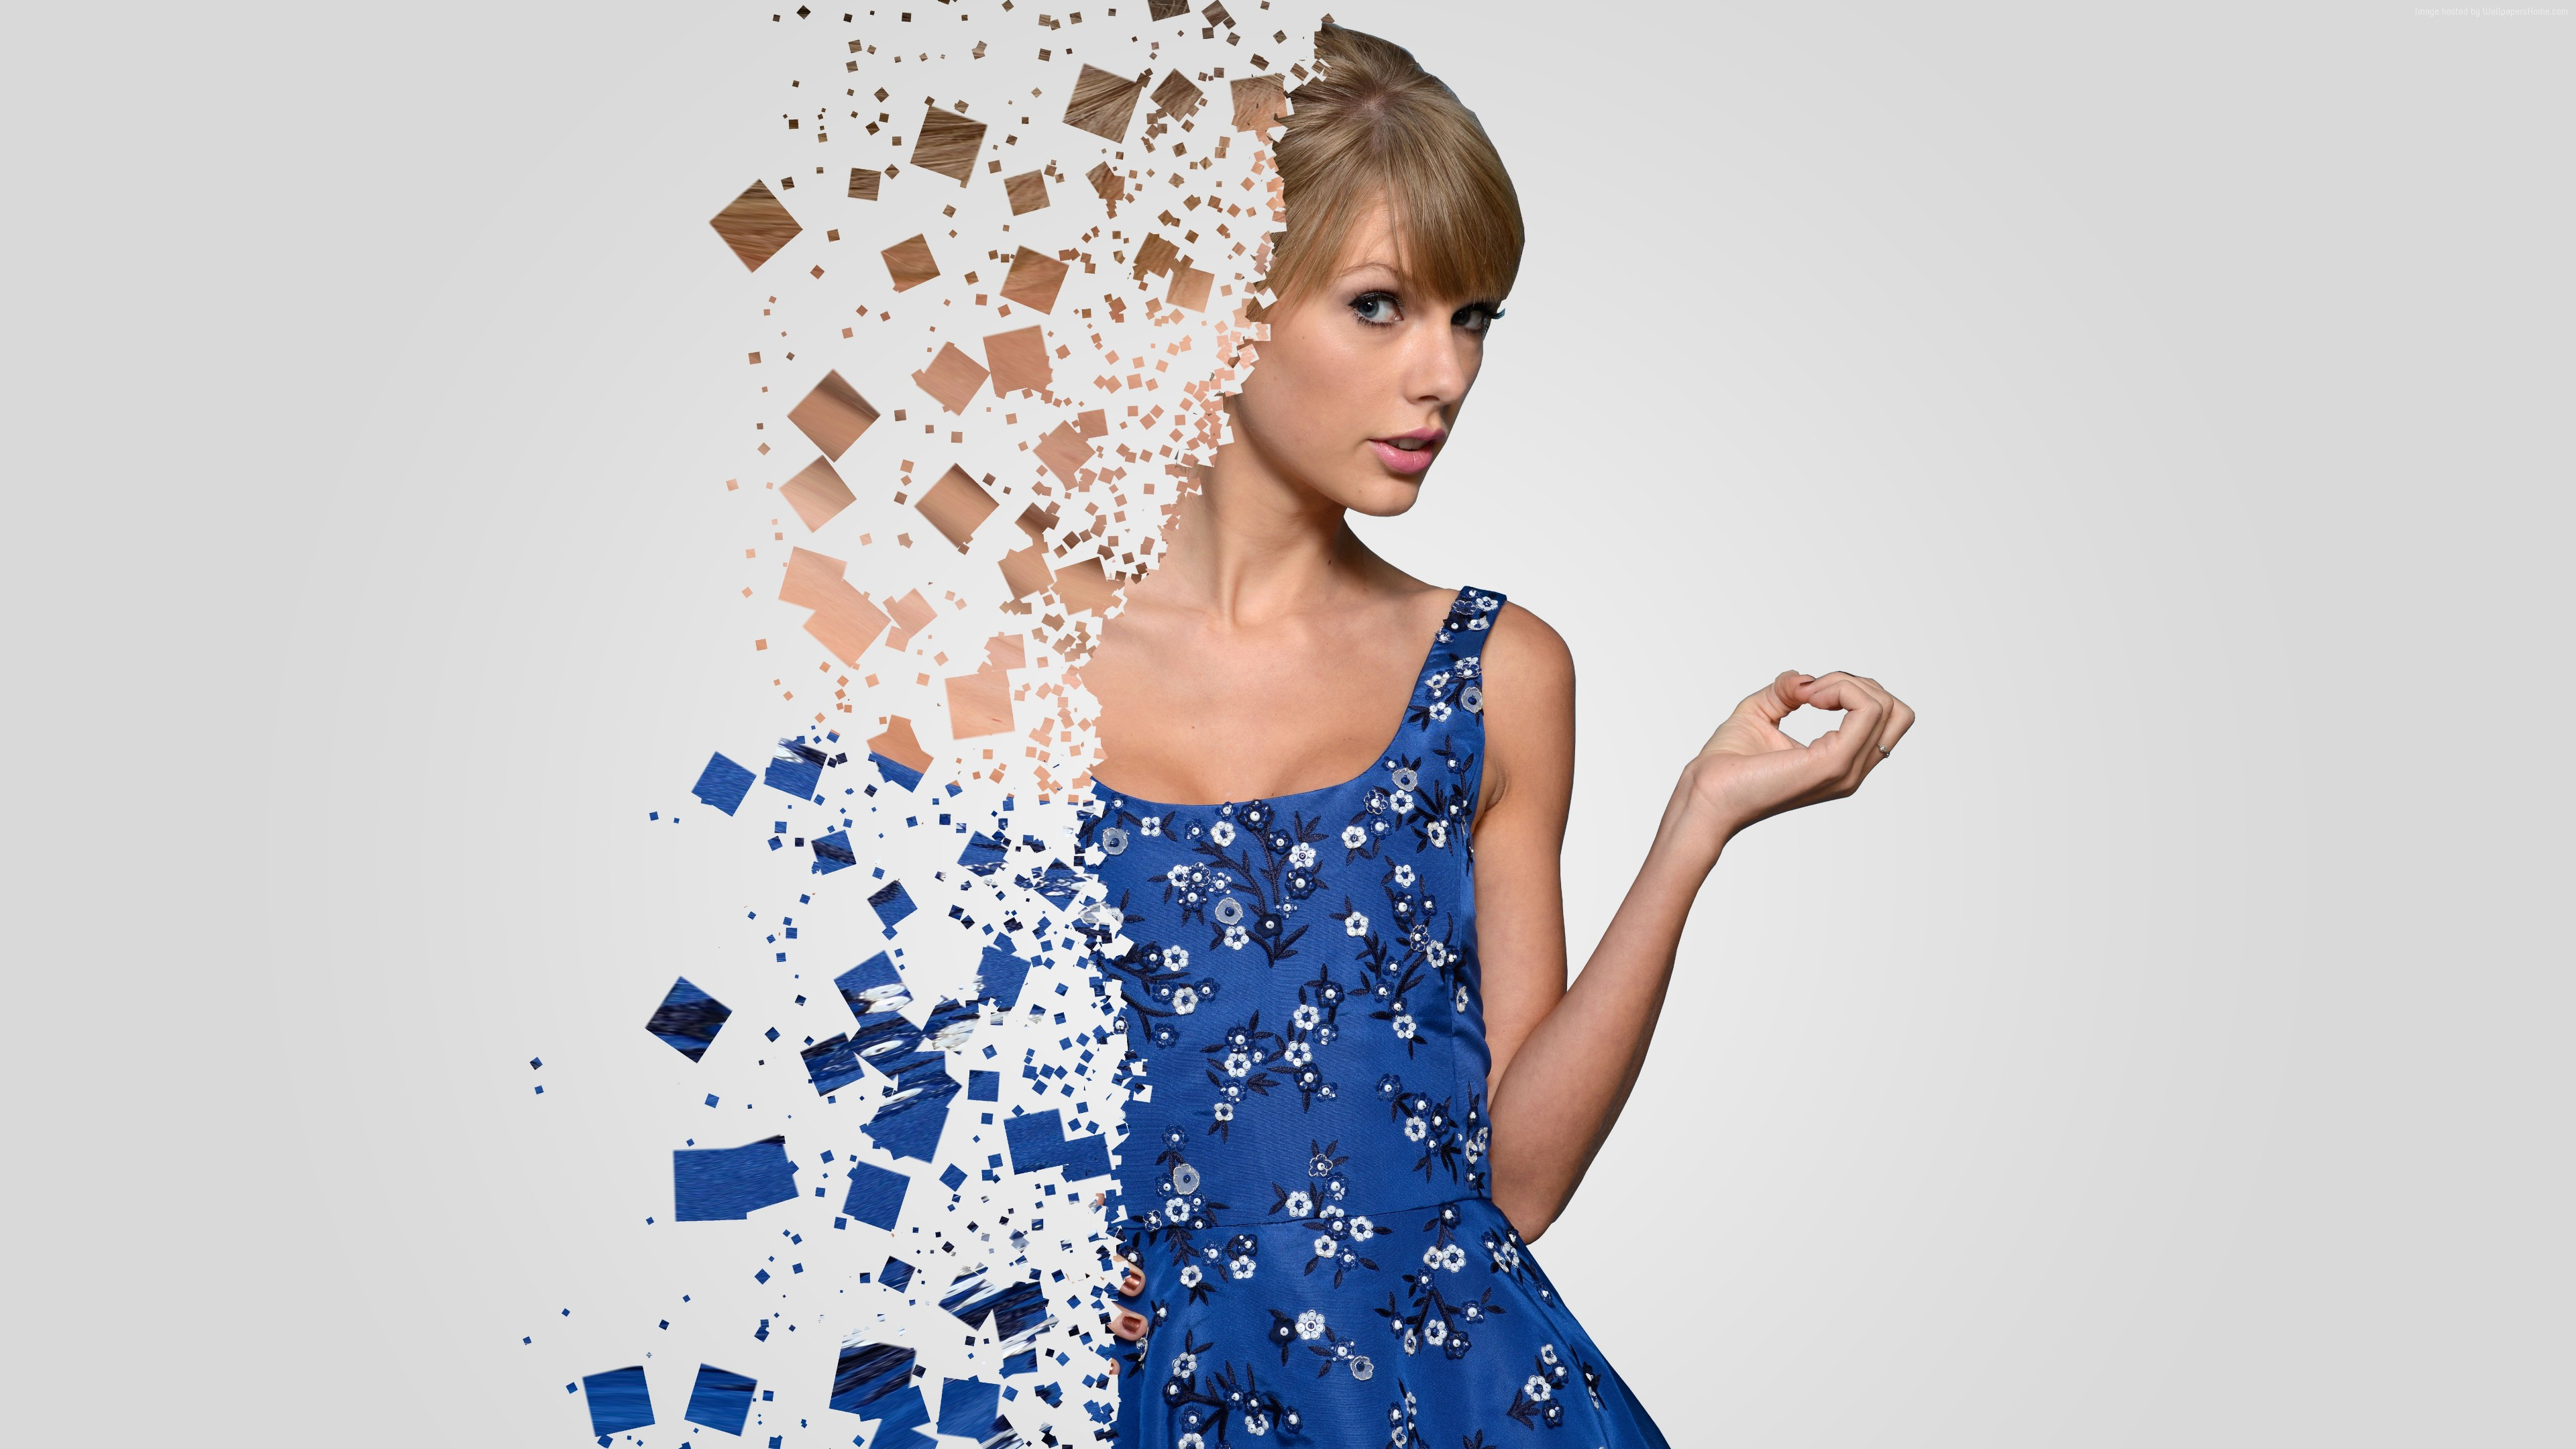 Wallpaper Taylor Swift, Top music artist and bands, singer, actress, Music